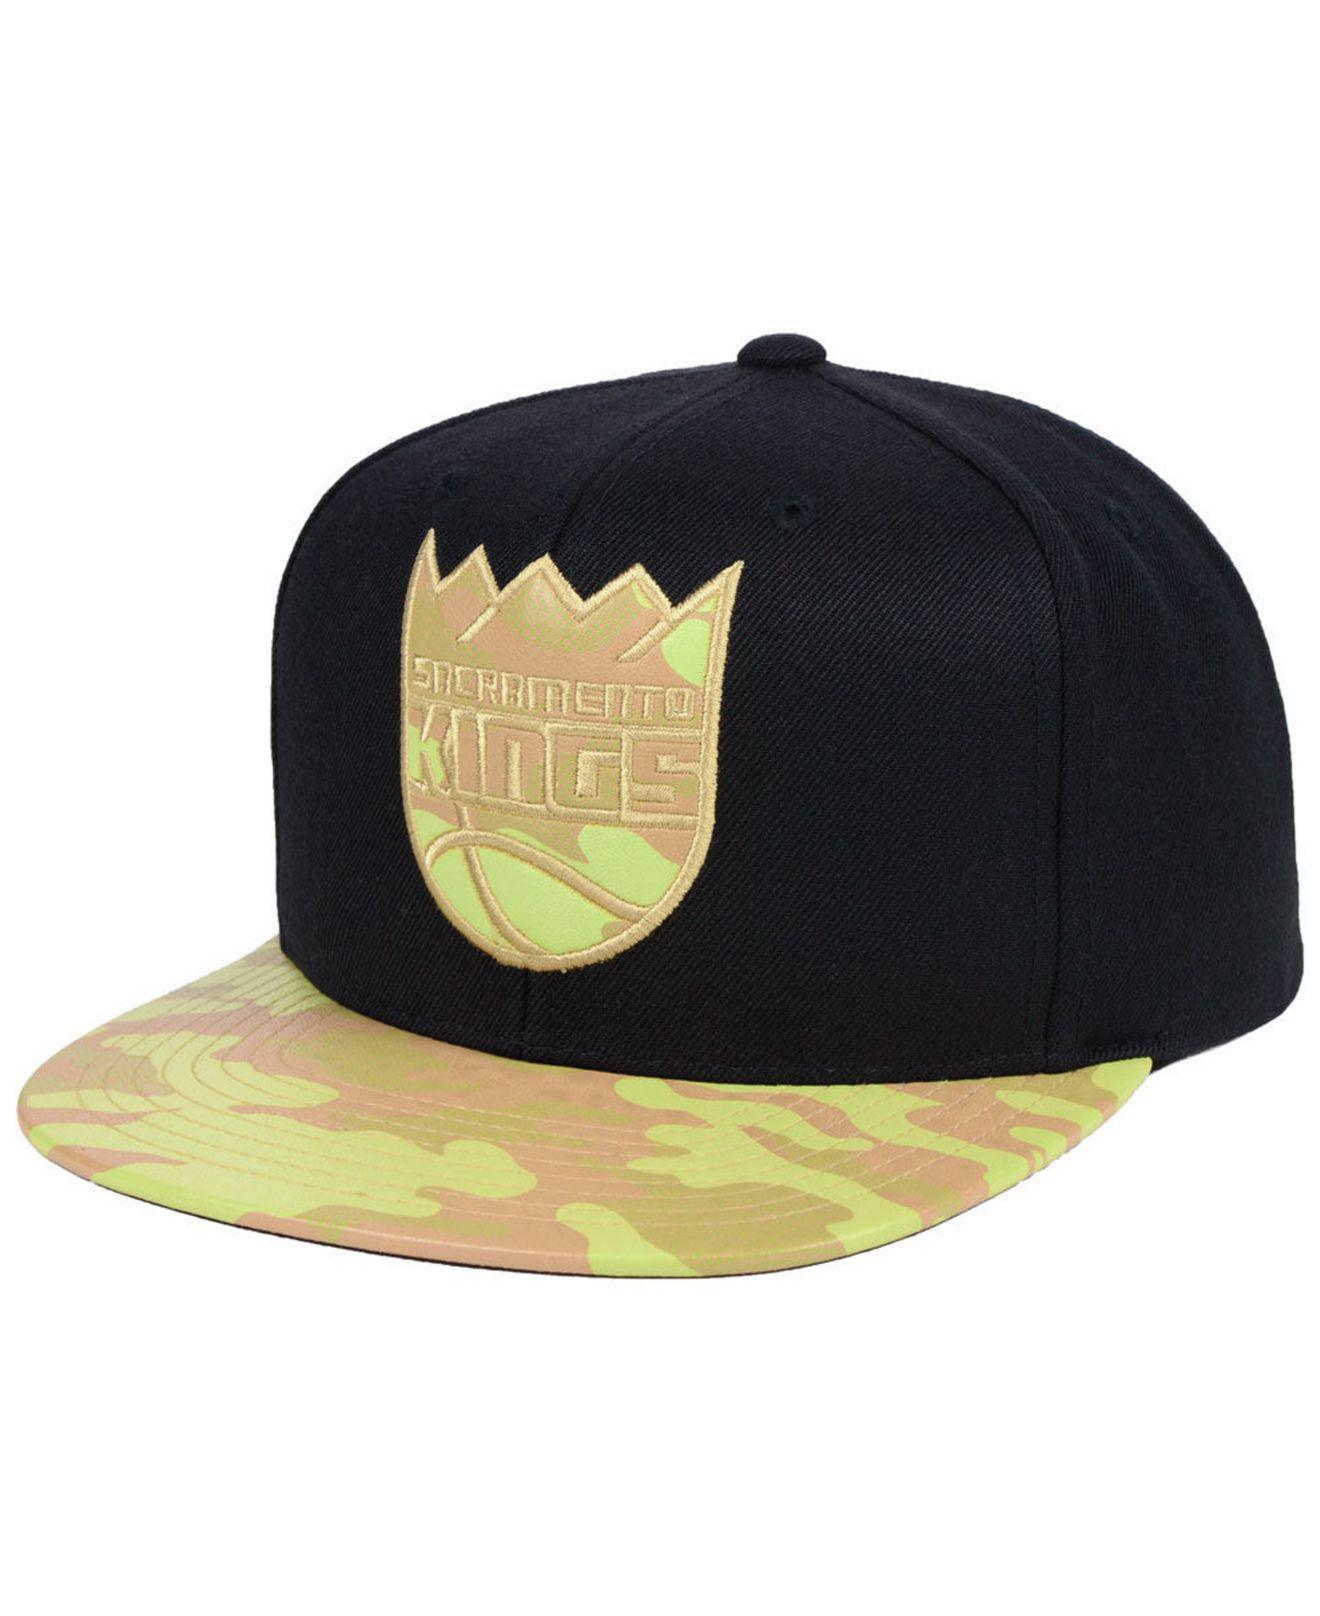 check out 17759 72855 ... where can i buy mitchell ness. black sacramento kings natural camo snapback  cap 4c611 3c765